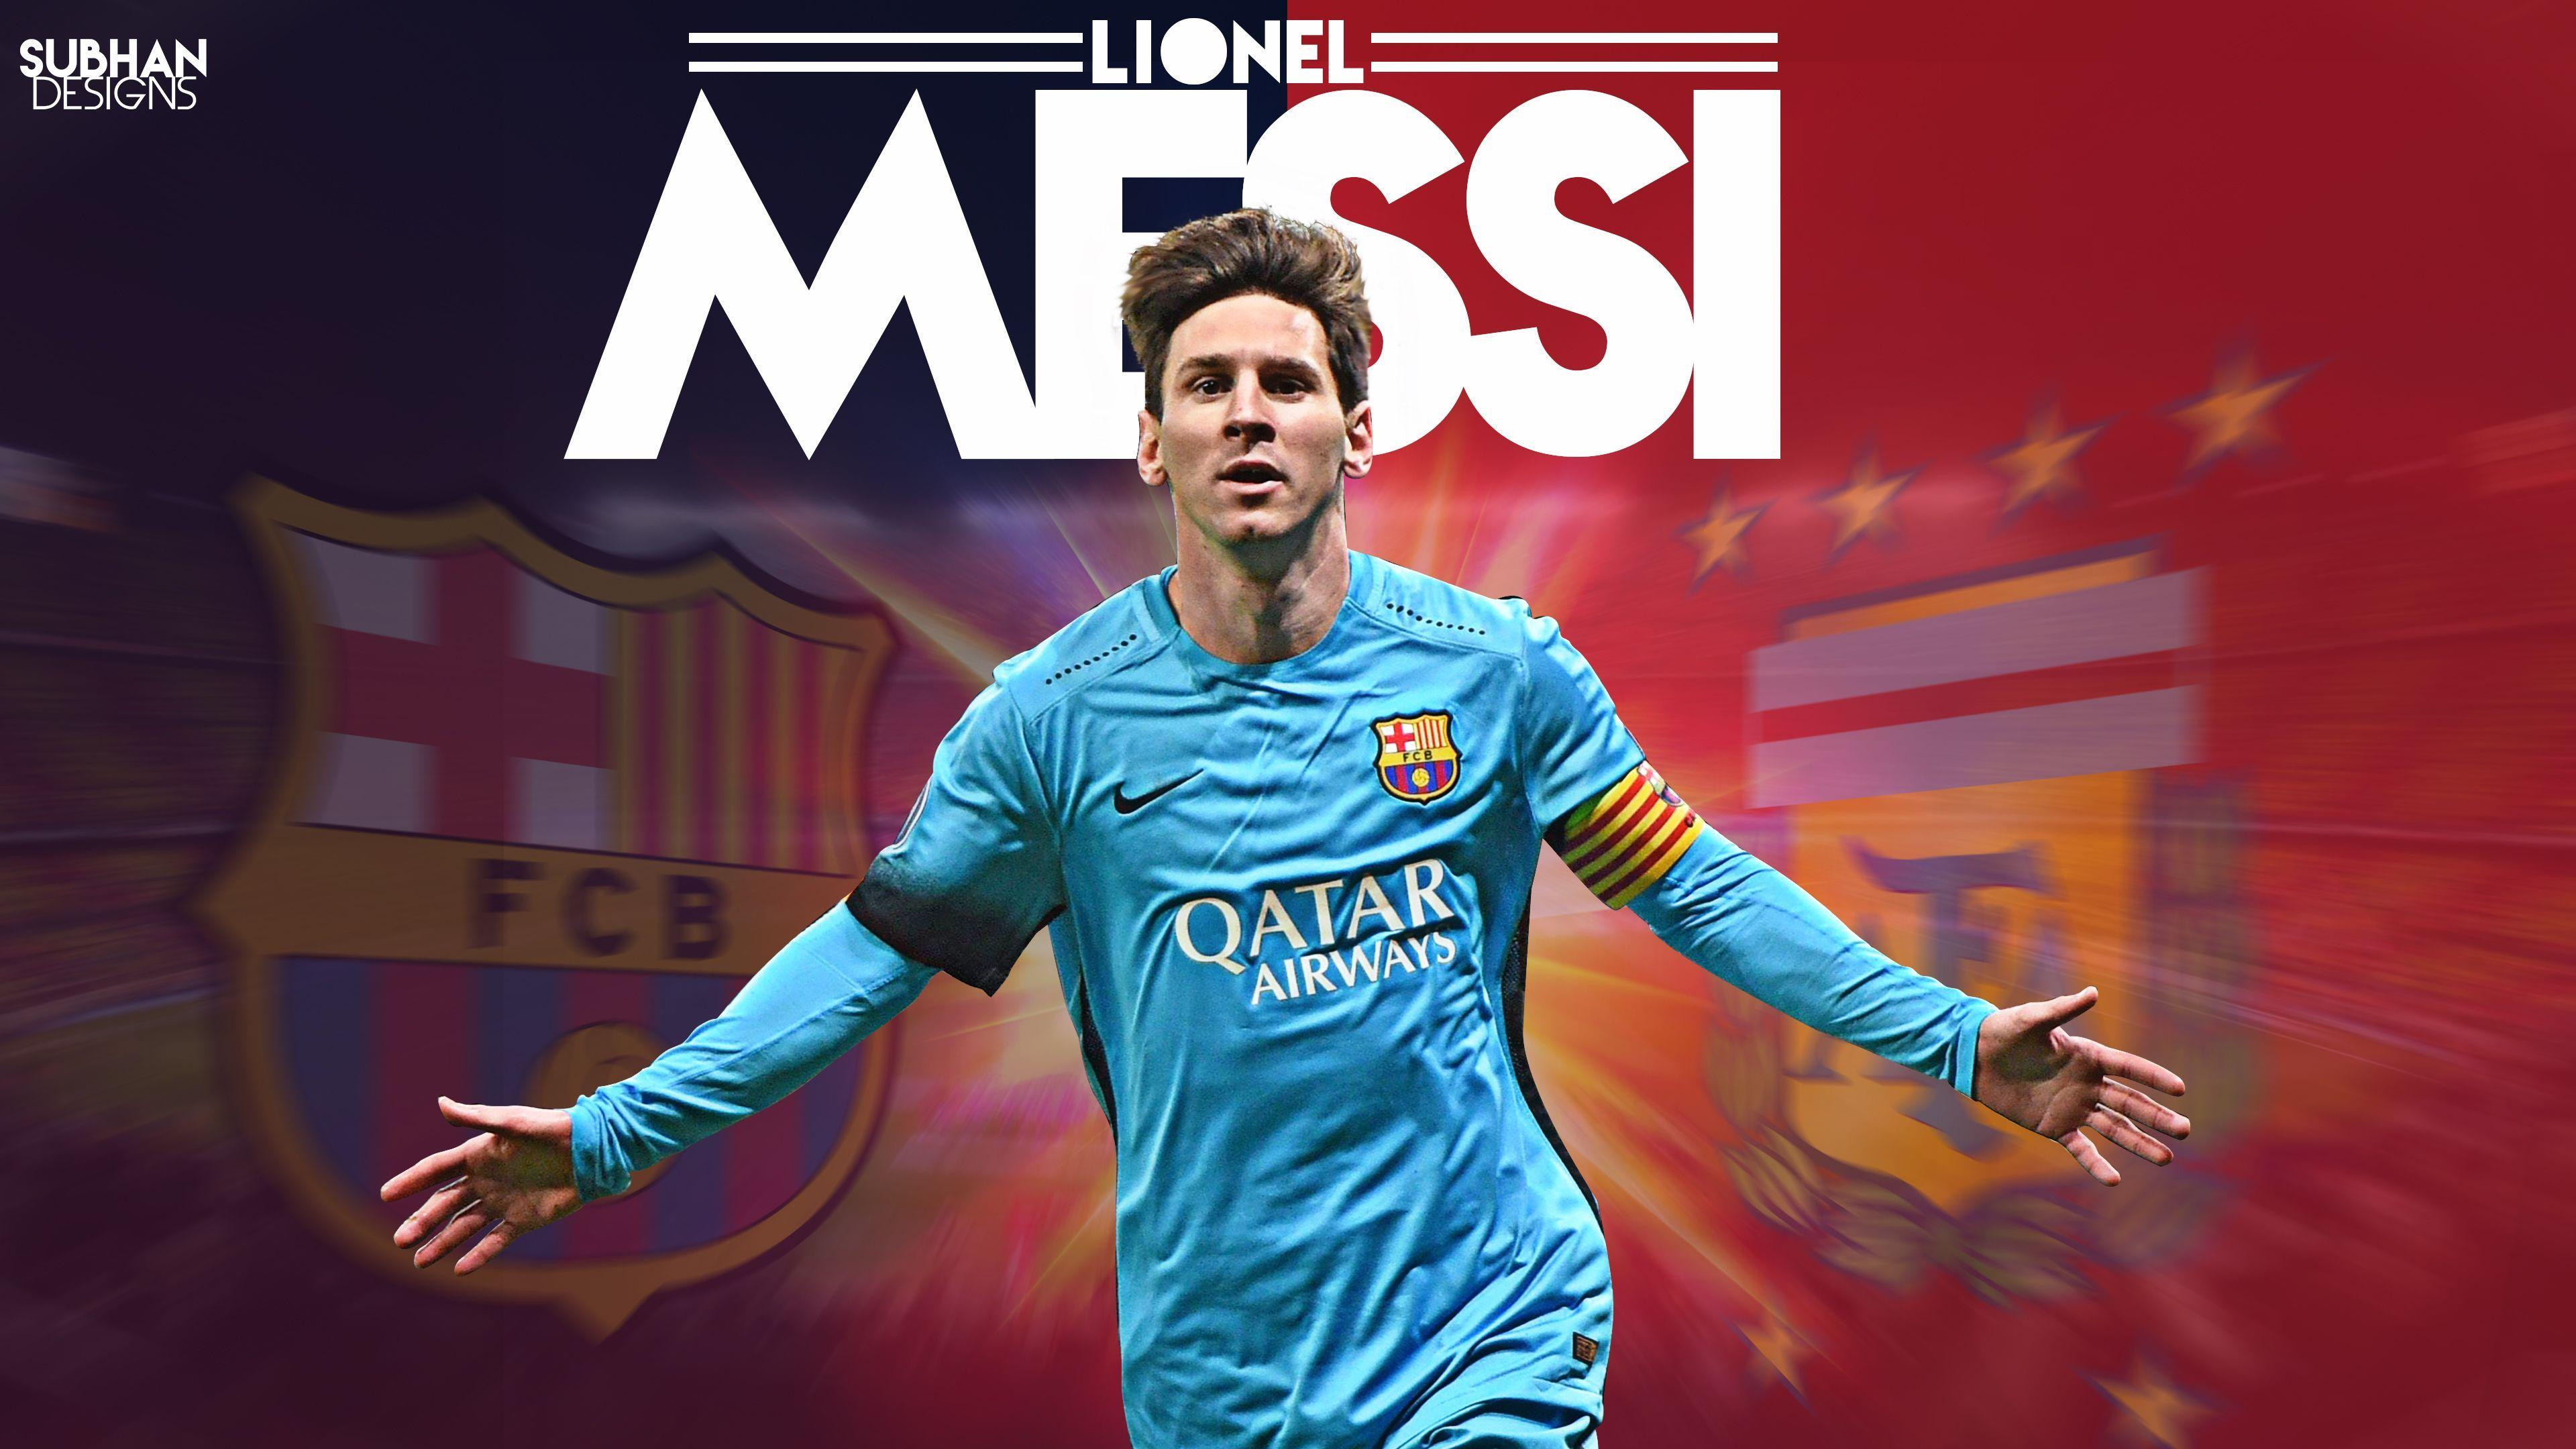 Lionel Messi Wallpapers 2016 3840x2160